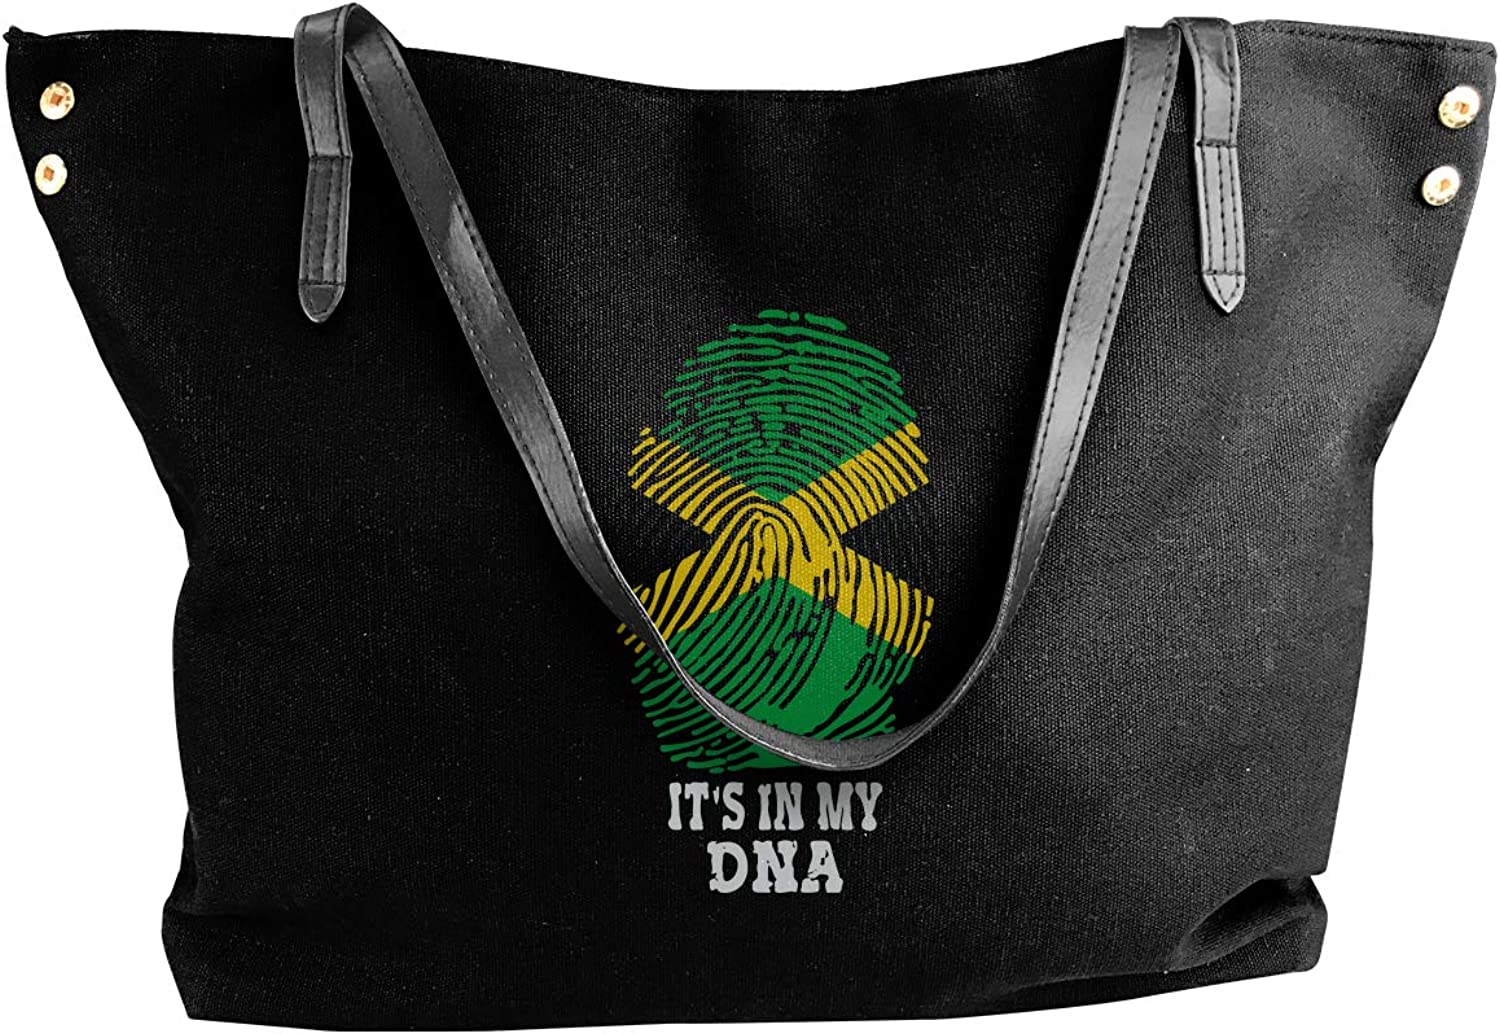 It's My DNA Jamaican Flag Women'S Casual Canvas Shoulder Bag For Travel Handbag